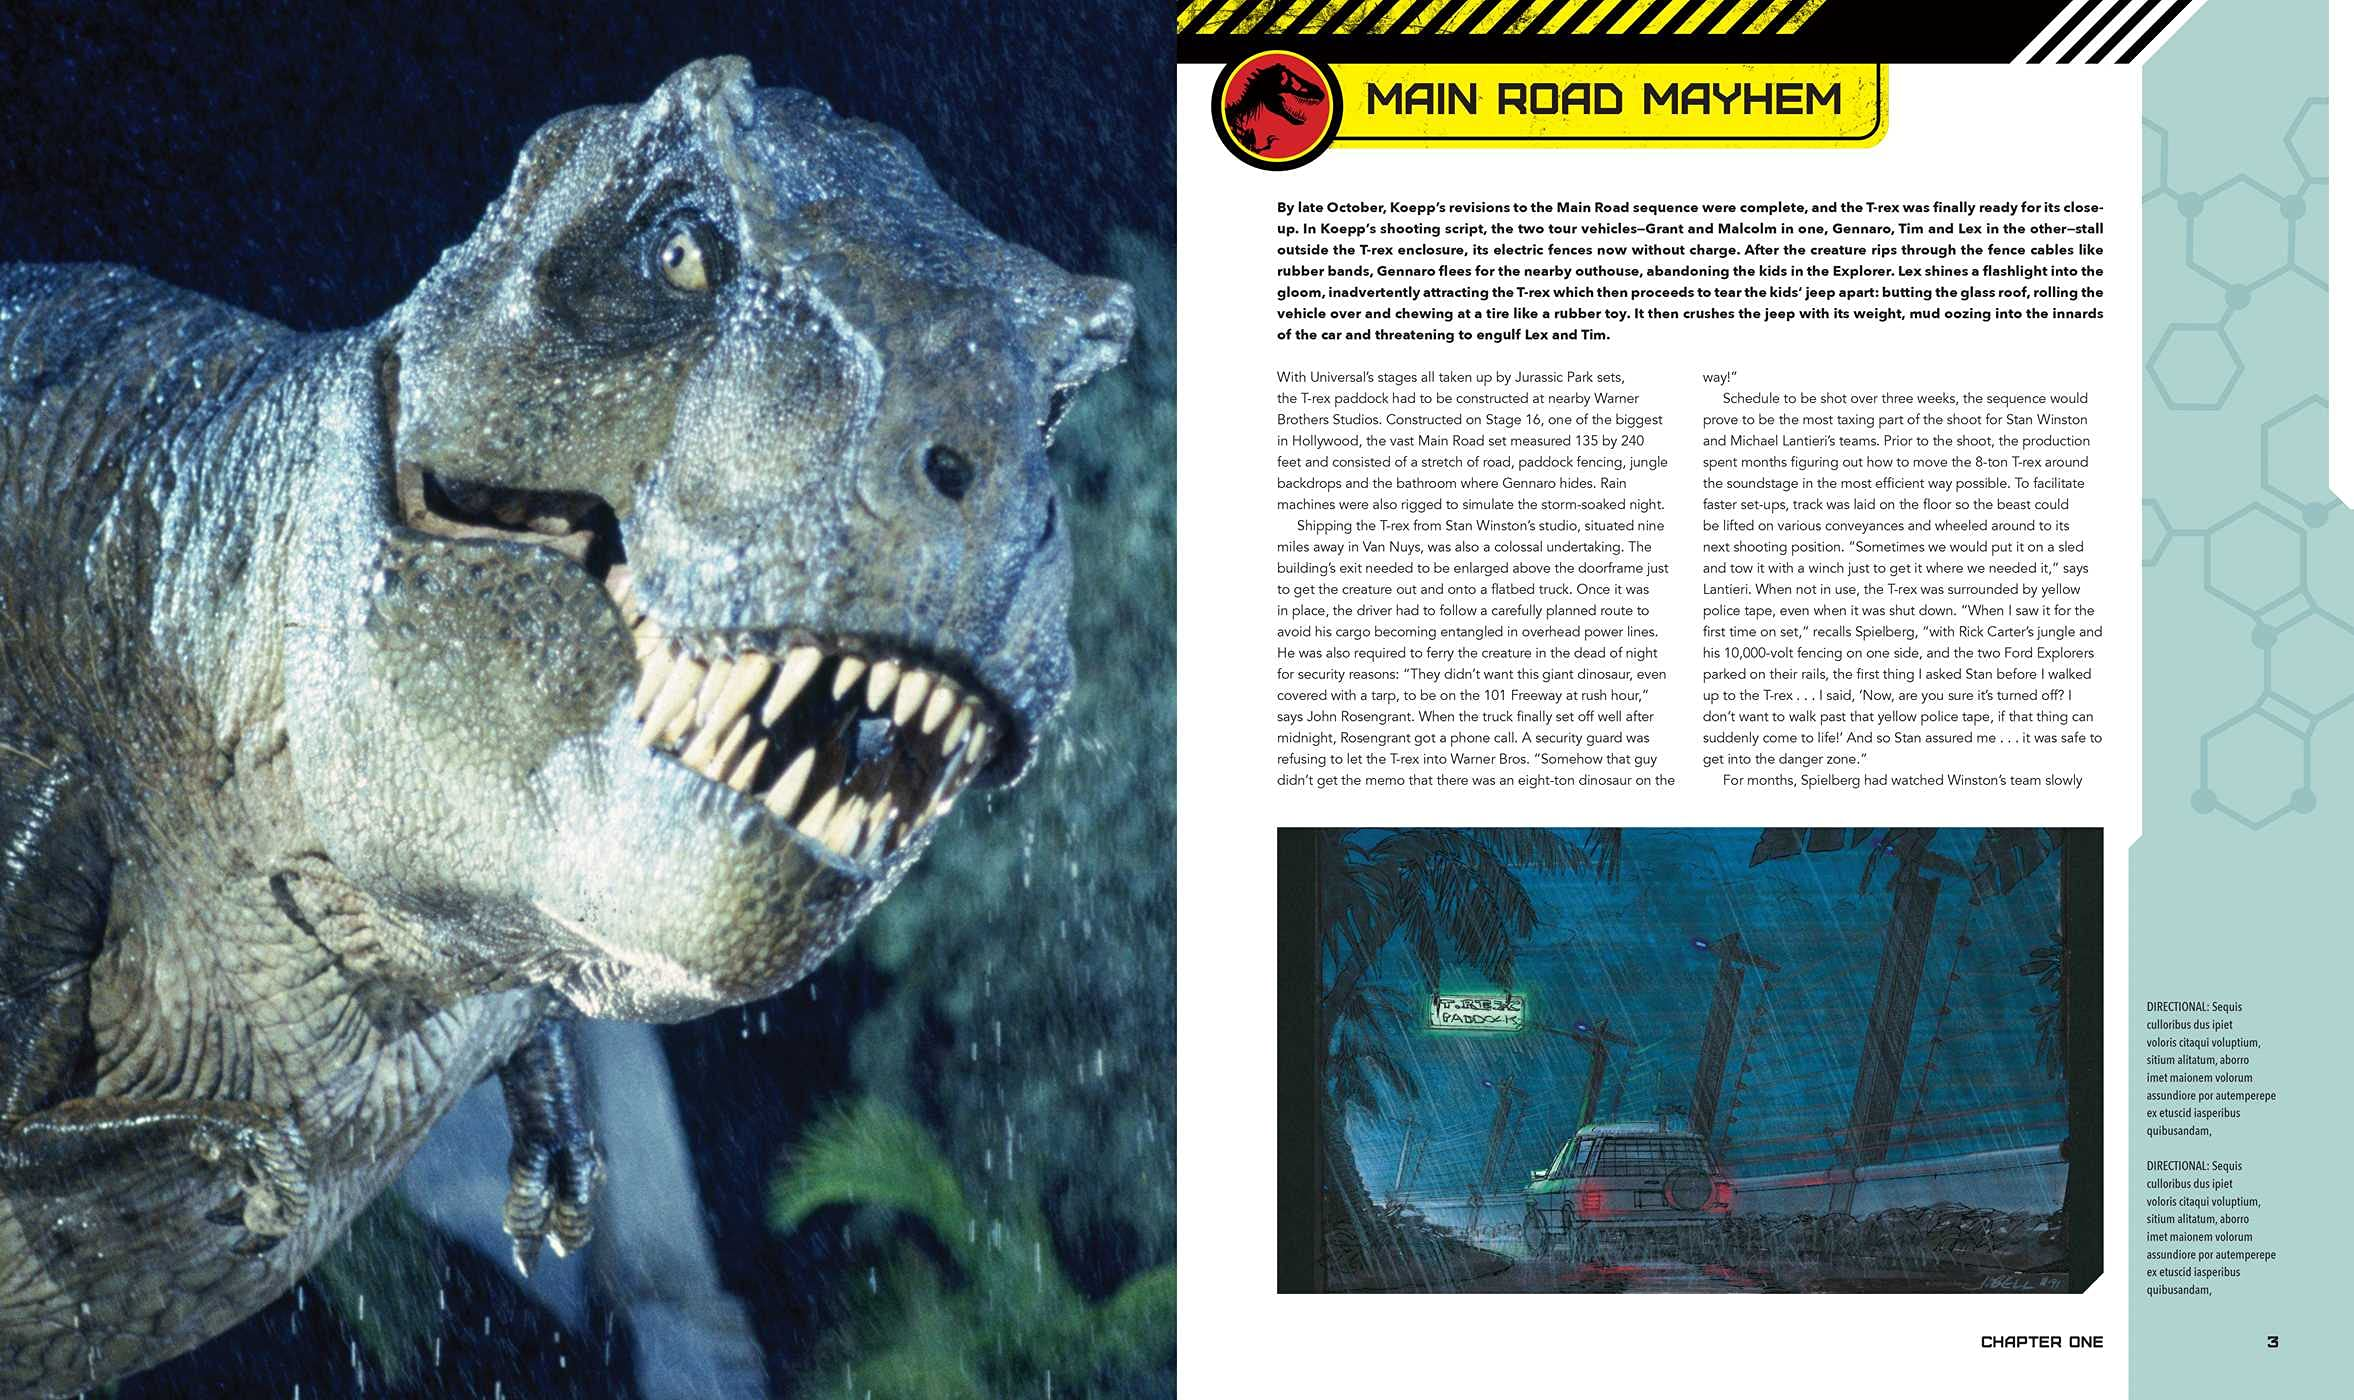 Jurassic Park: The Ultimate Visual History announced 81f2VhDihwS